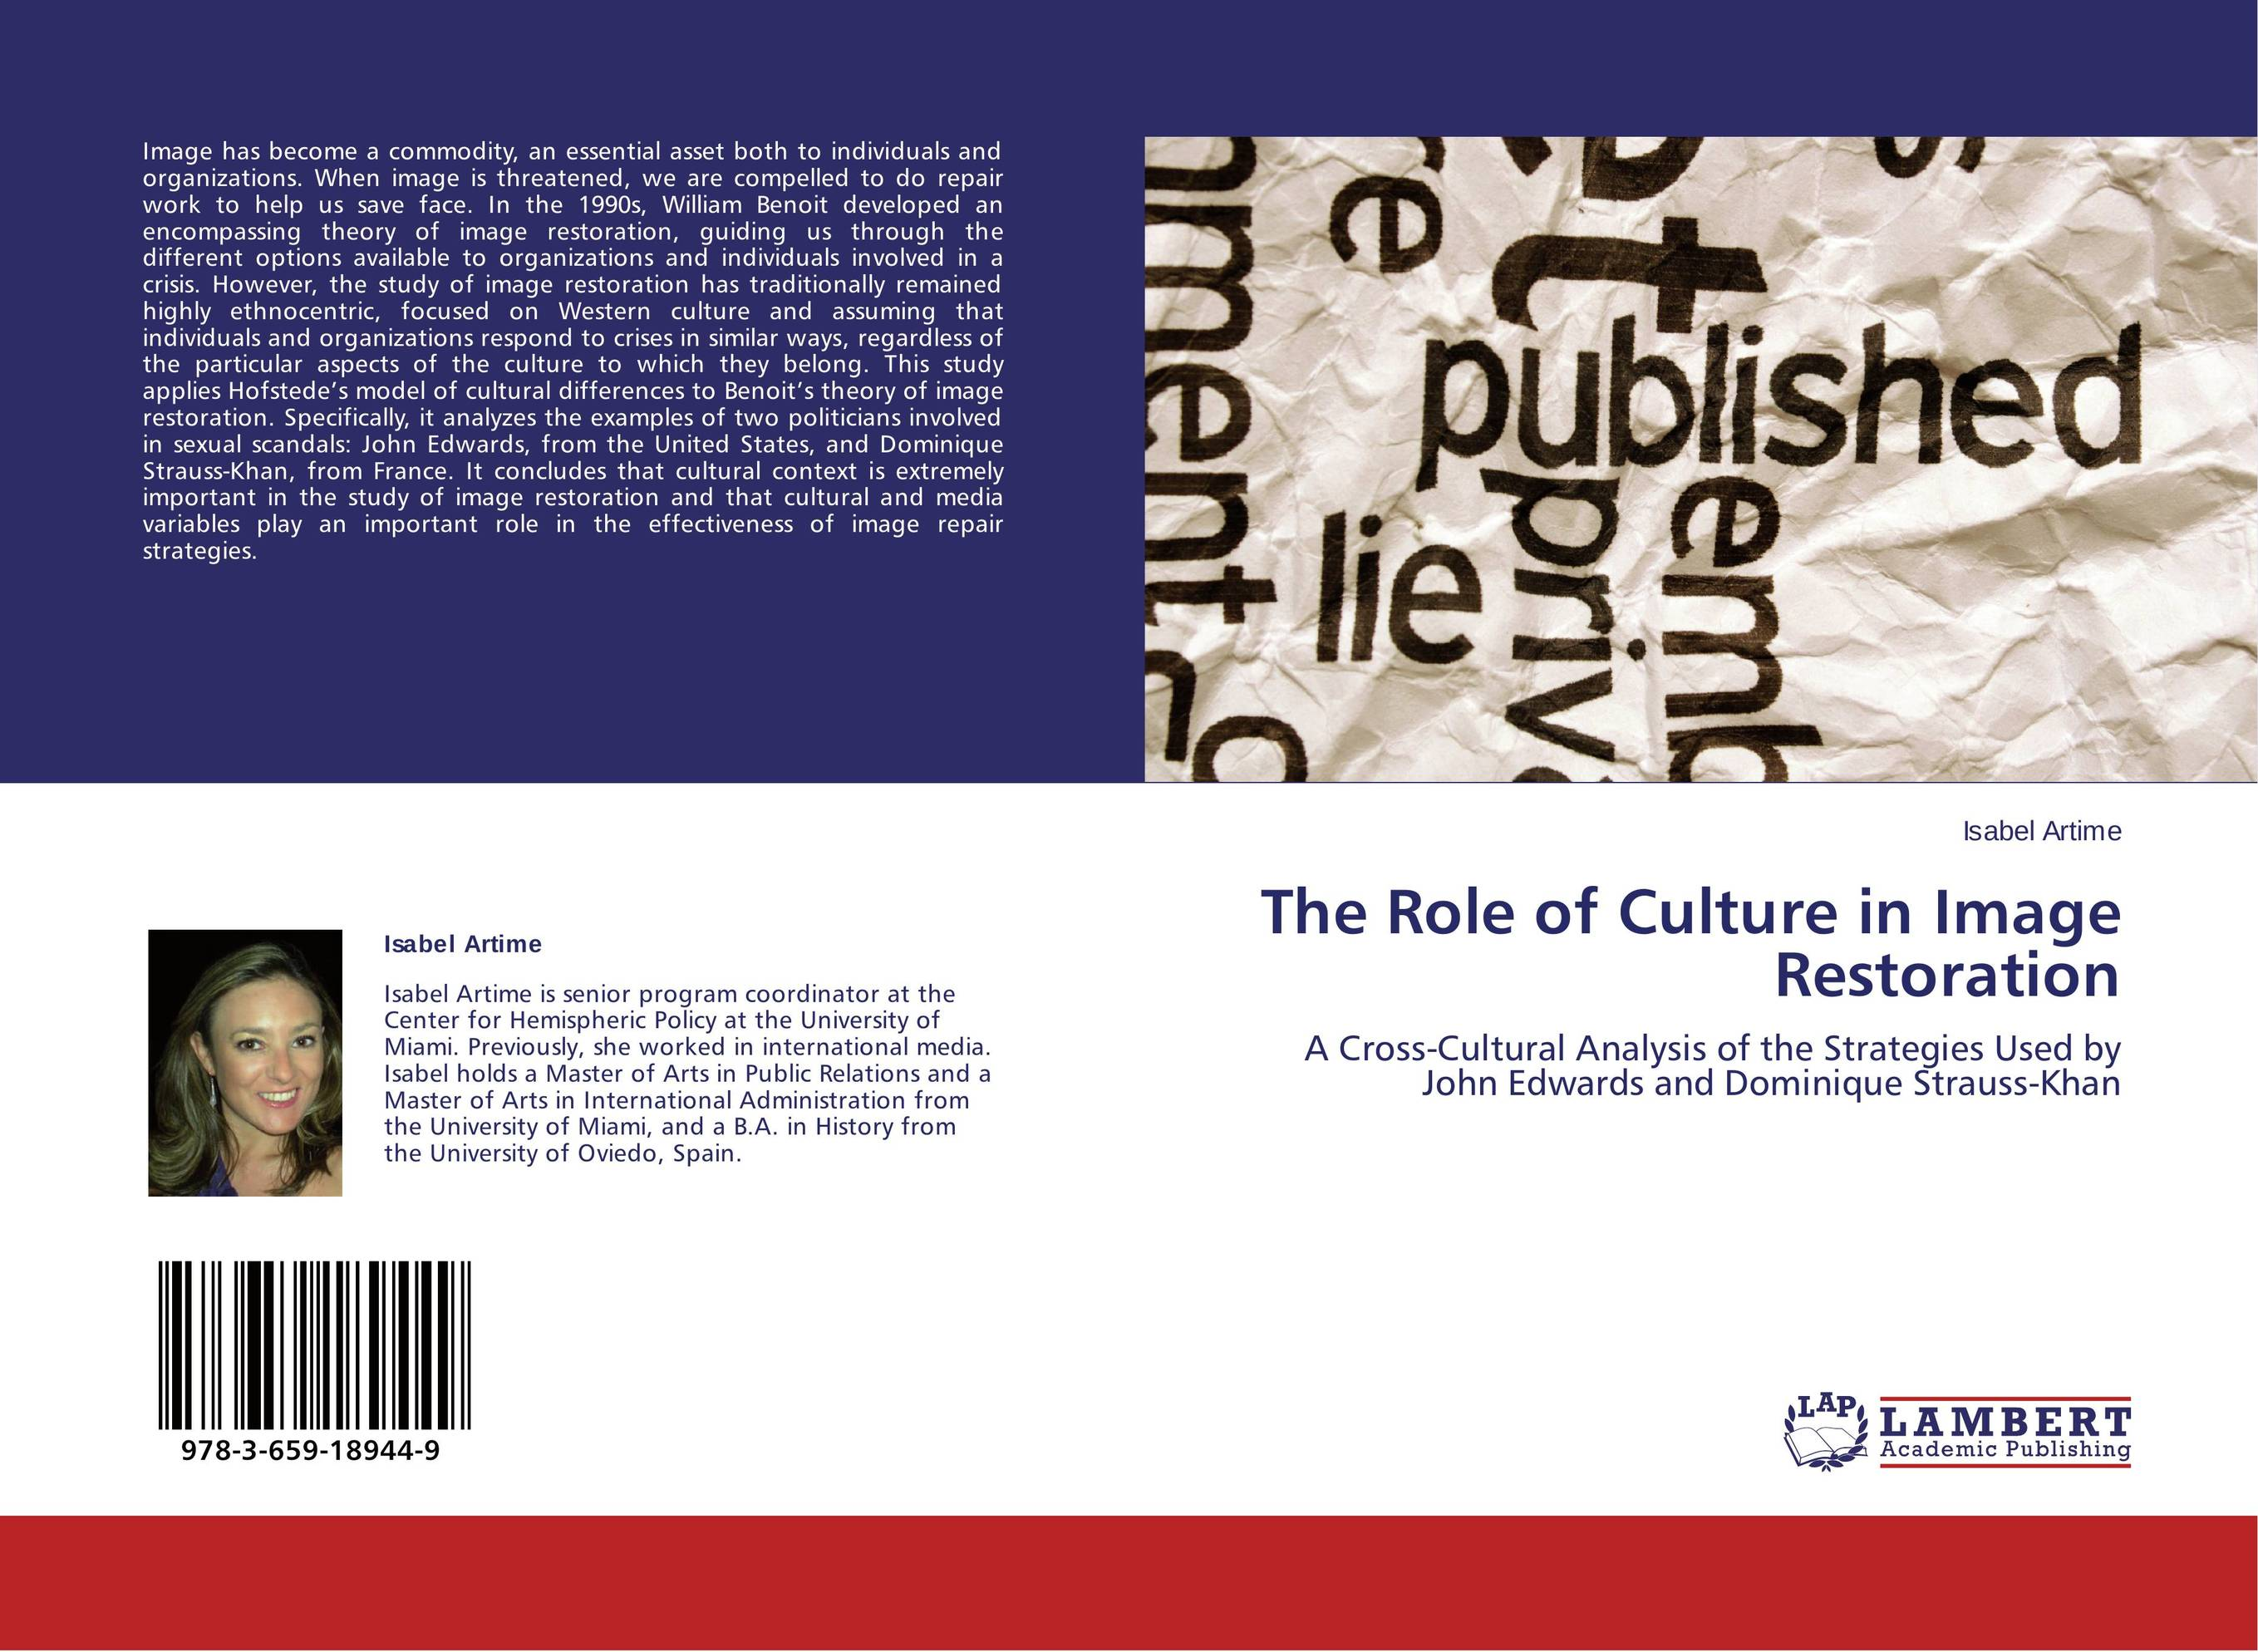 the commodification and commercialization of youth culture cultural studies essay Internet on modern youth the content of the current media culture is often blind to a young person's cultural,economic and educational background the concept of a media culture has evolvedowing to the increased volume, variety and importance of mediated signs and messagesand the interplay of interlaced meanings in the world of young people, themedia are saturated by popular culture and penetrate politics, the economy, leisuretime and education.